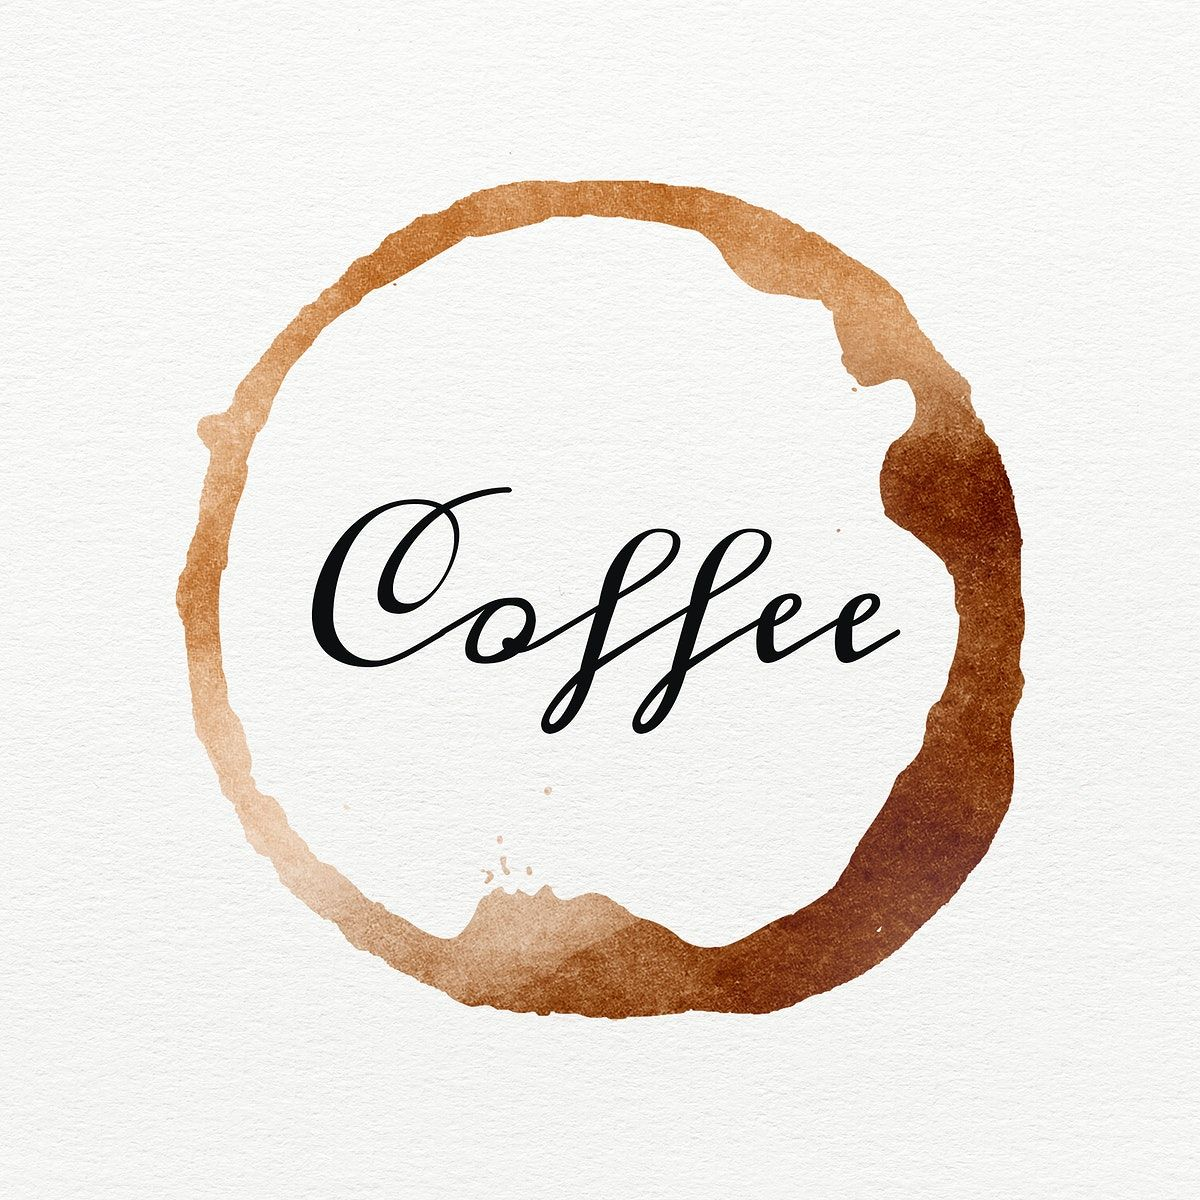 Word coffee on a brown coffee cup stain | free image by rawpixel.com / Wit in 2020 | Brown ...